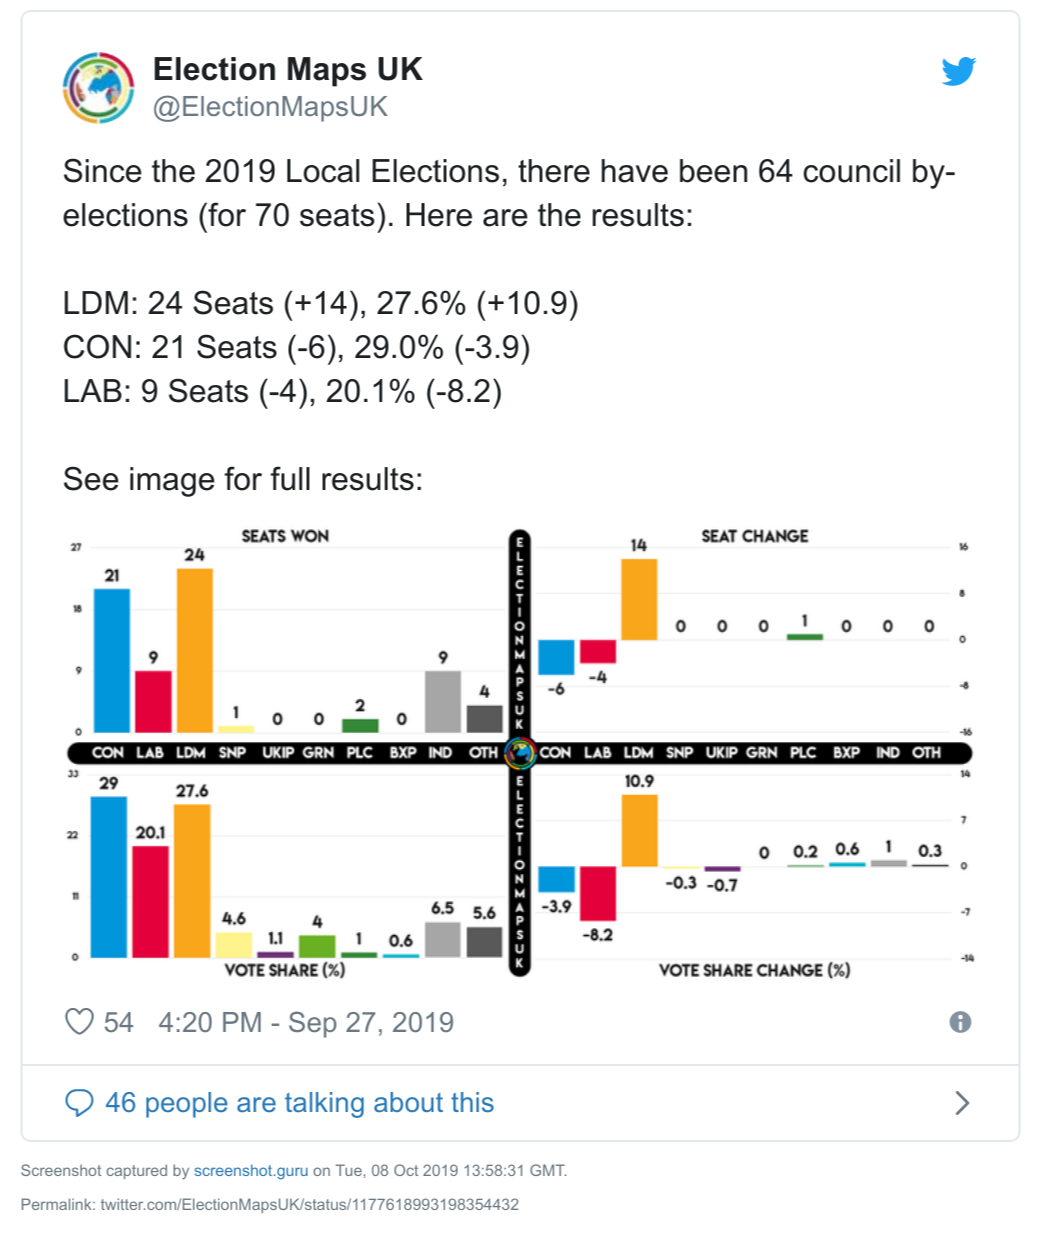 Election Maps UK roundup of council by election results as of end September 2019